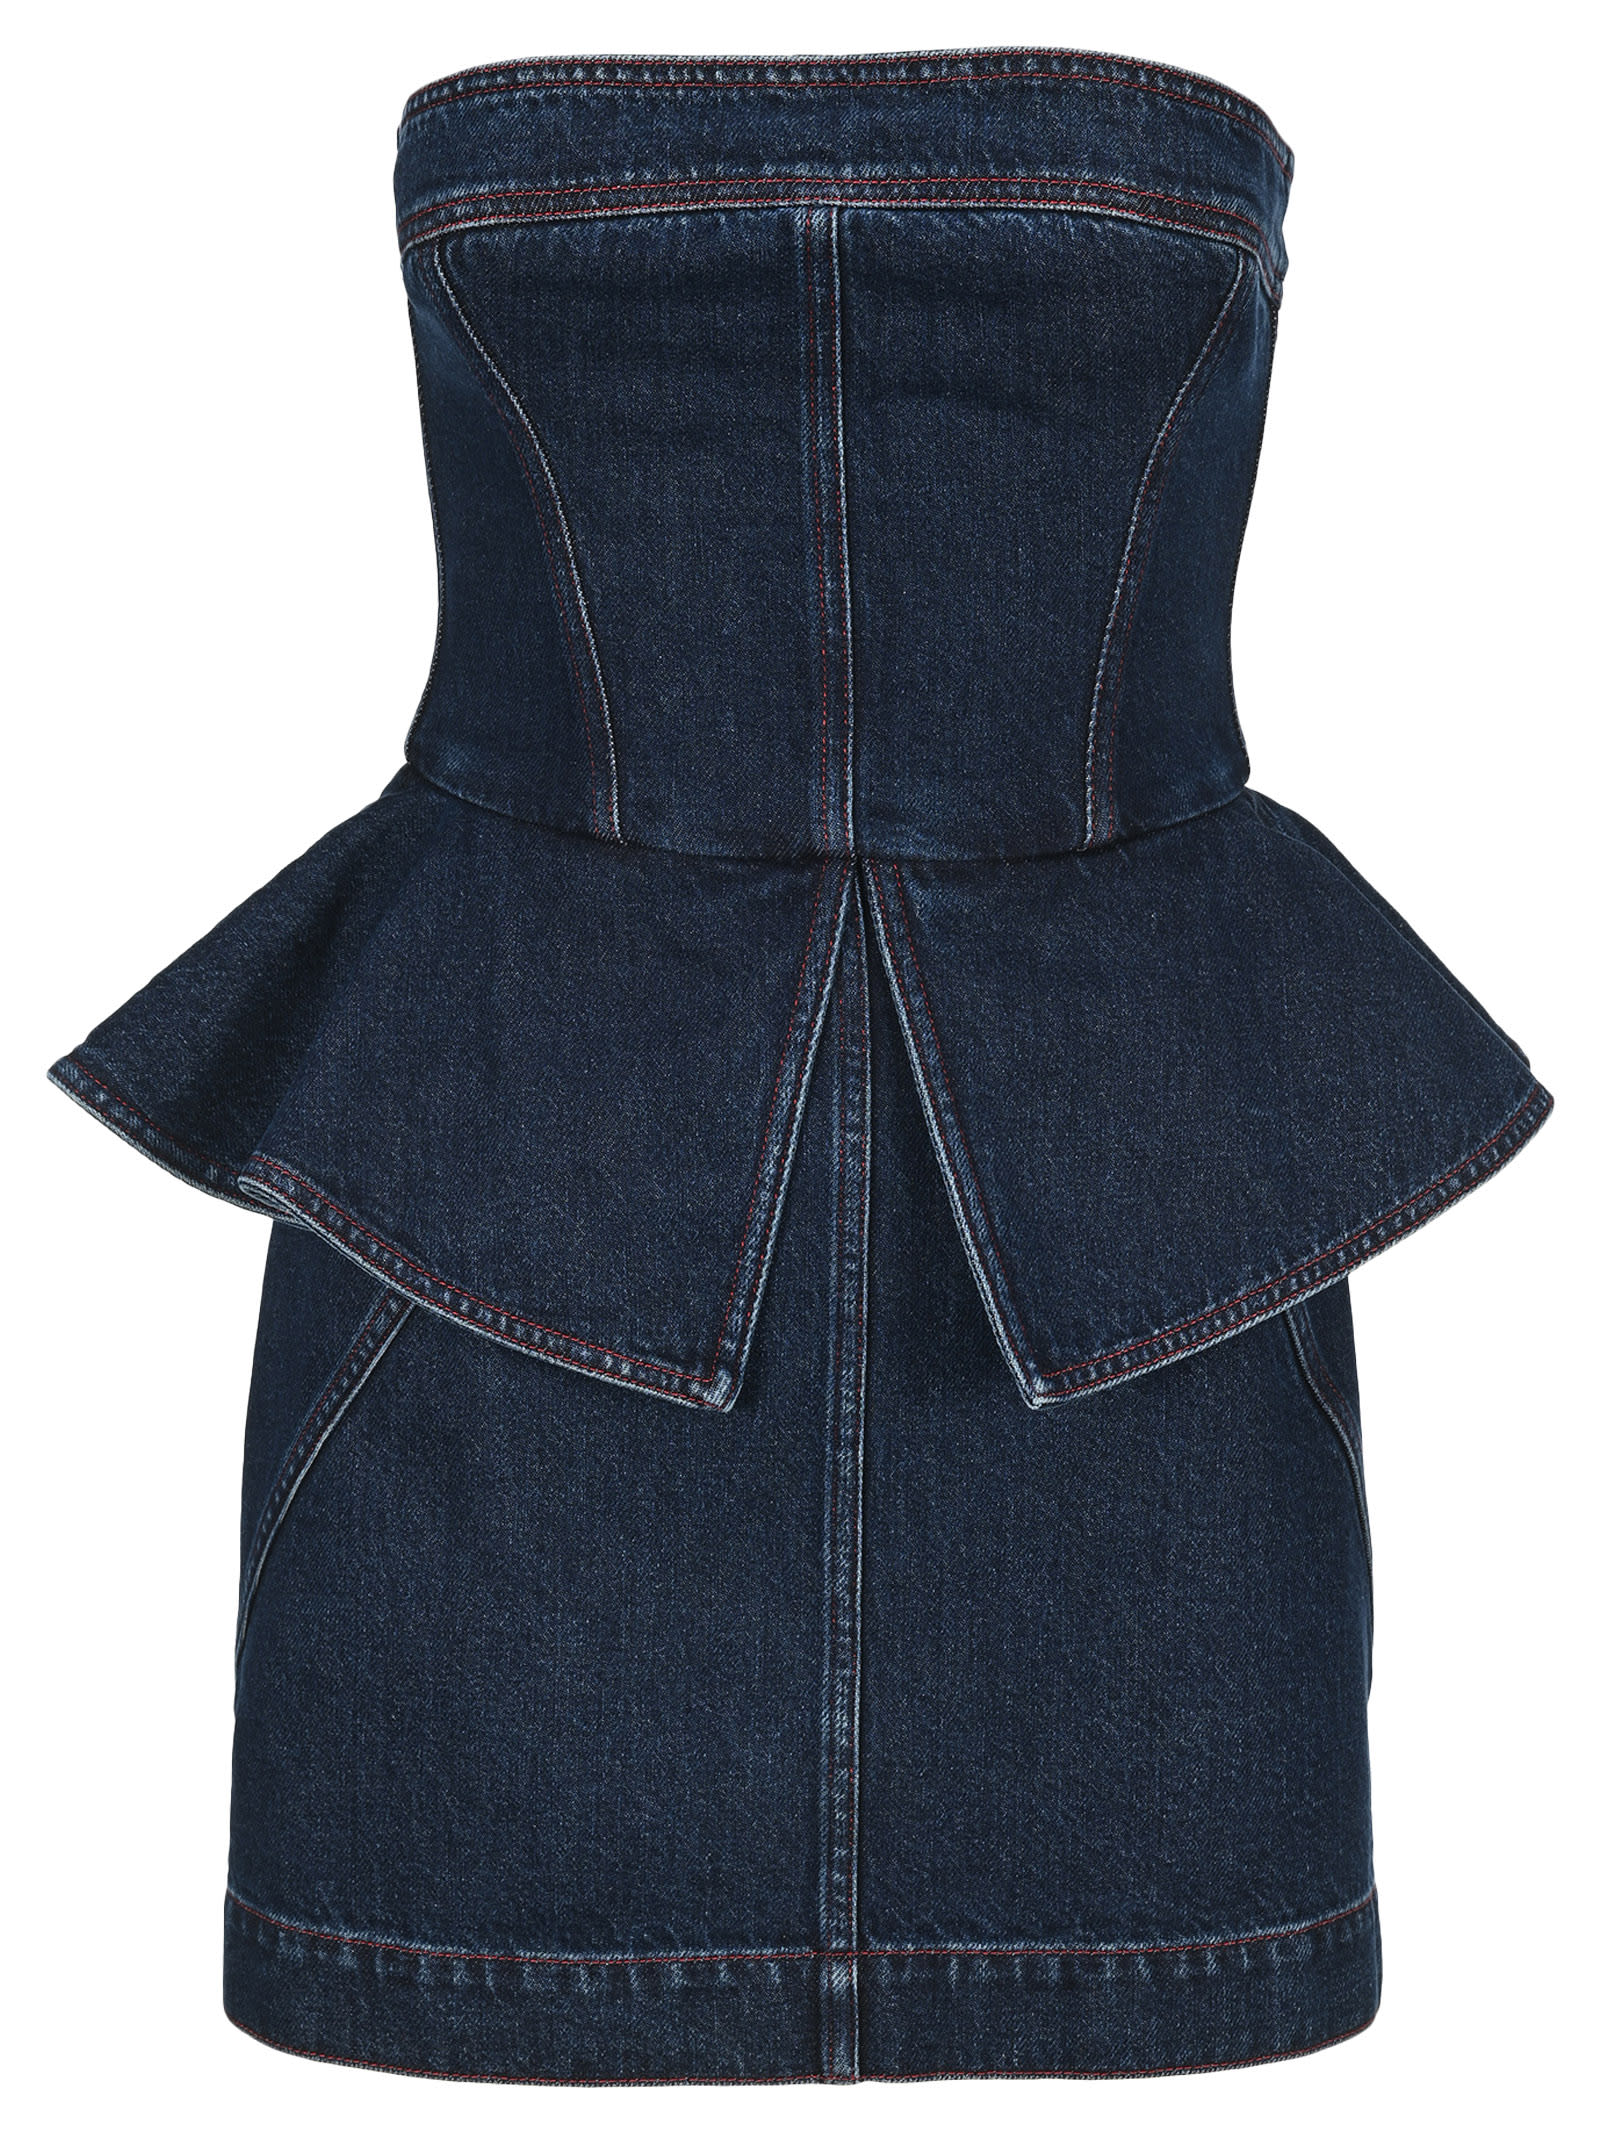 Buy Philosophy Bustier Denim Dress online, shop Philosophy di Lorenzo Serafini with free shipping